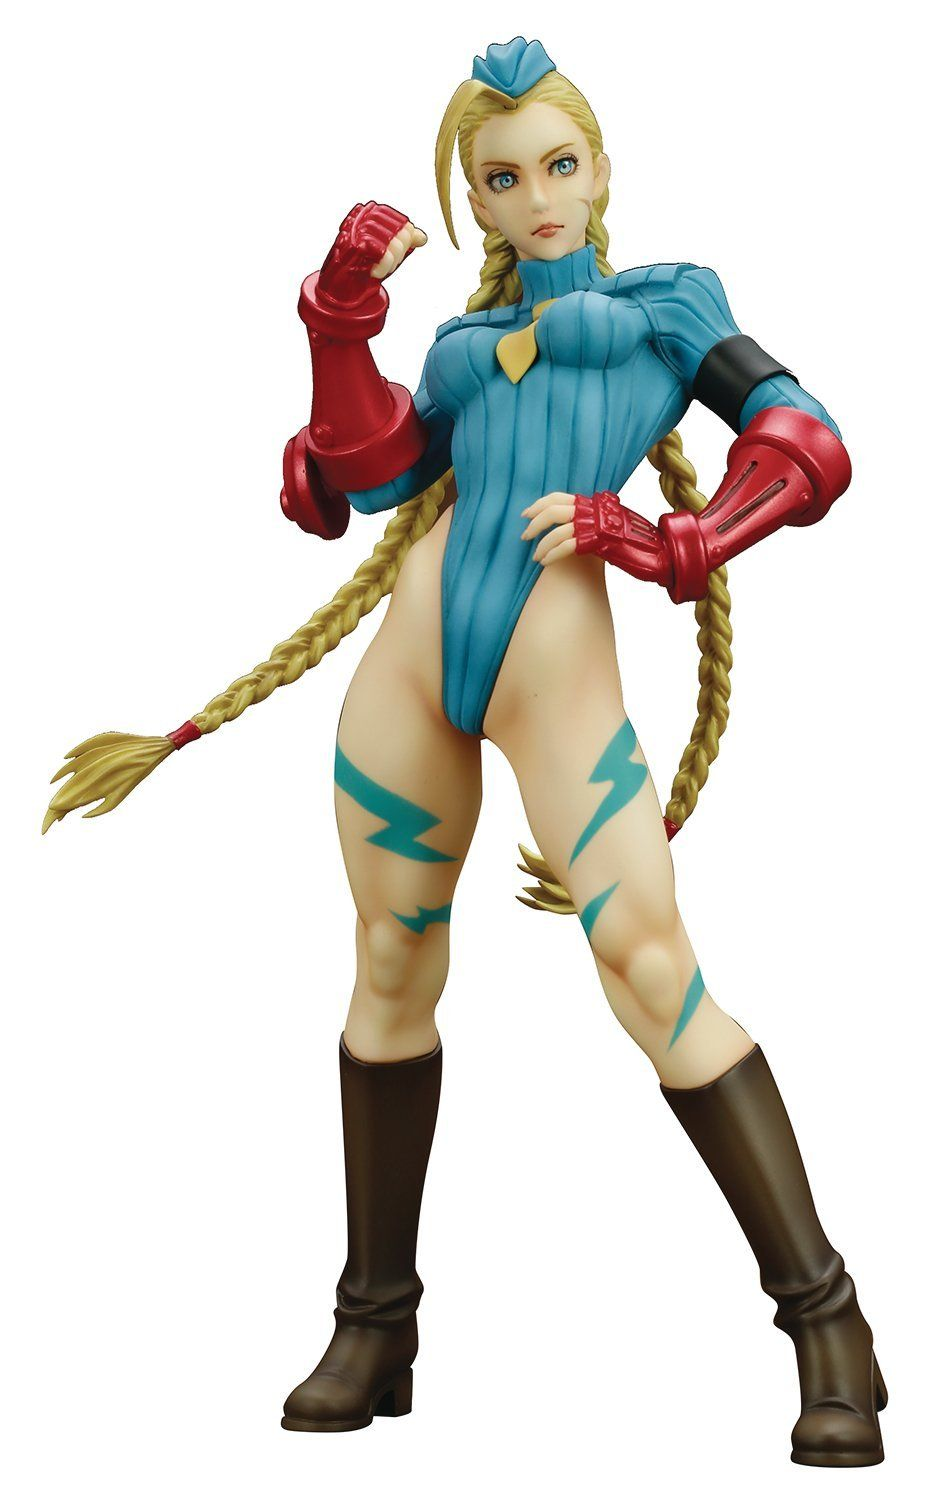 Hot Sale Bishoujo Statue Cammy White Alpha Costume Sexy 22.5cm Game Anime Street Fighter Kotobukiya Action Figure Figurine Toys